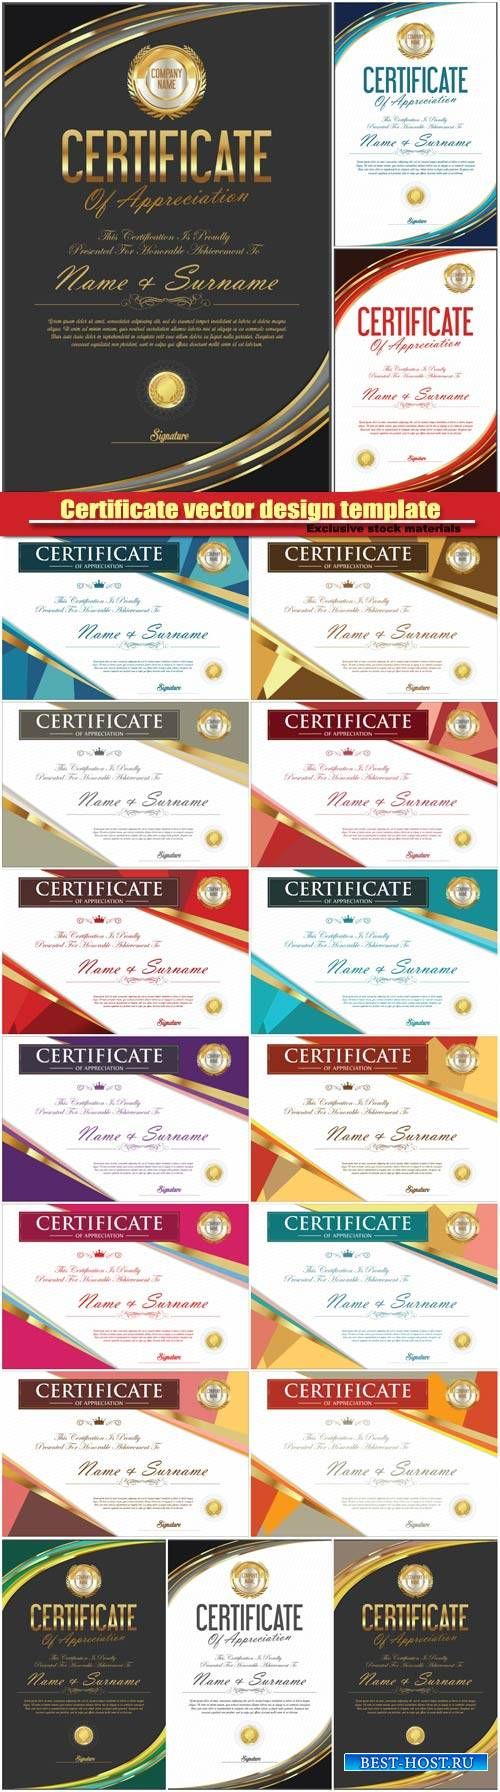 Certificate vector design template